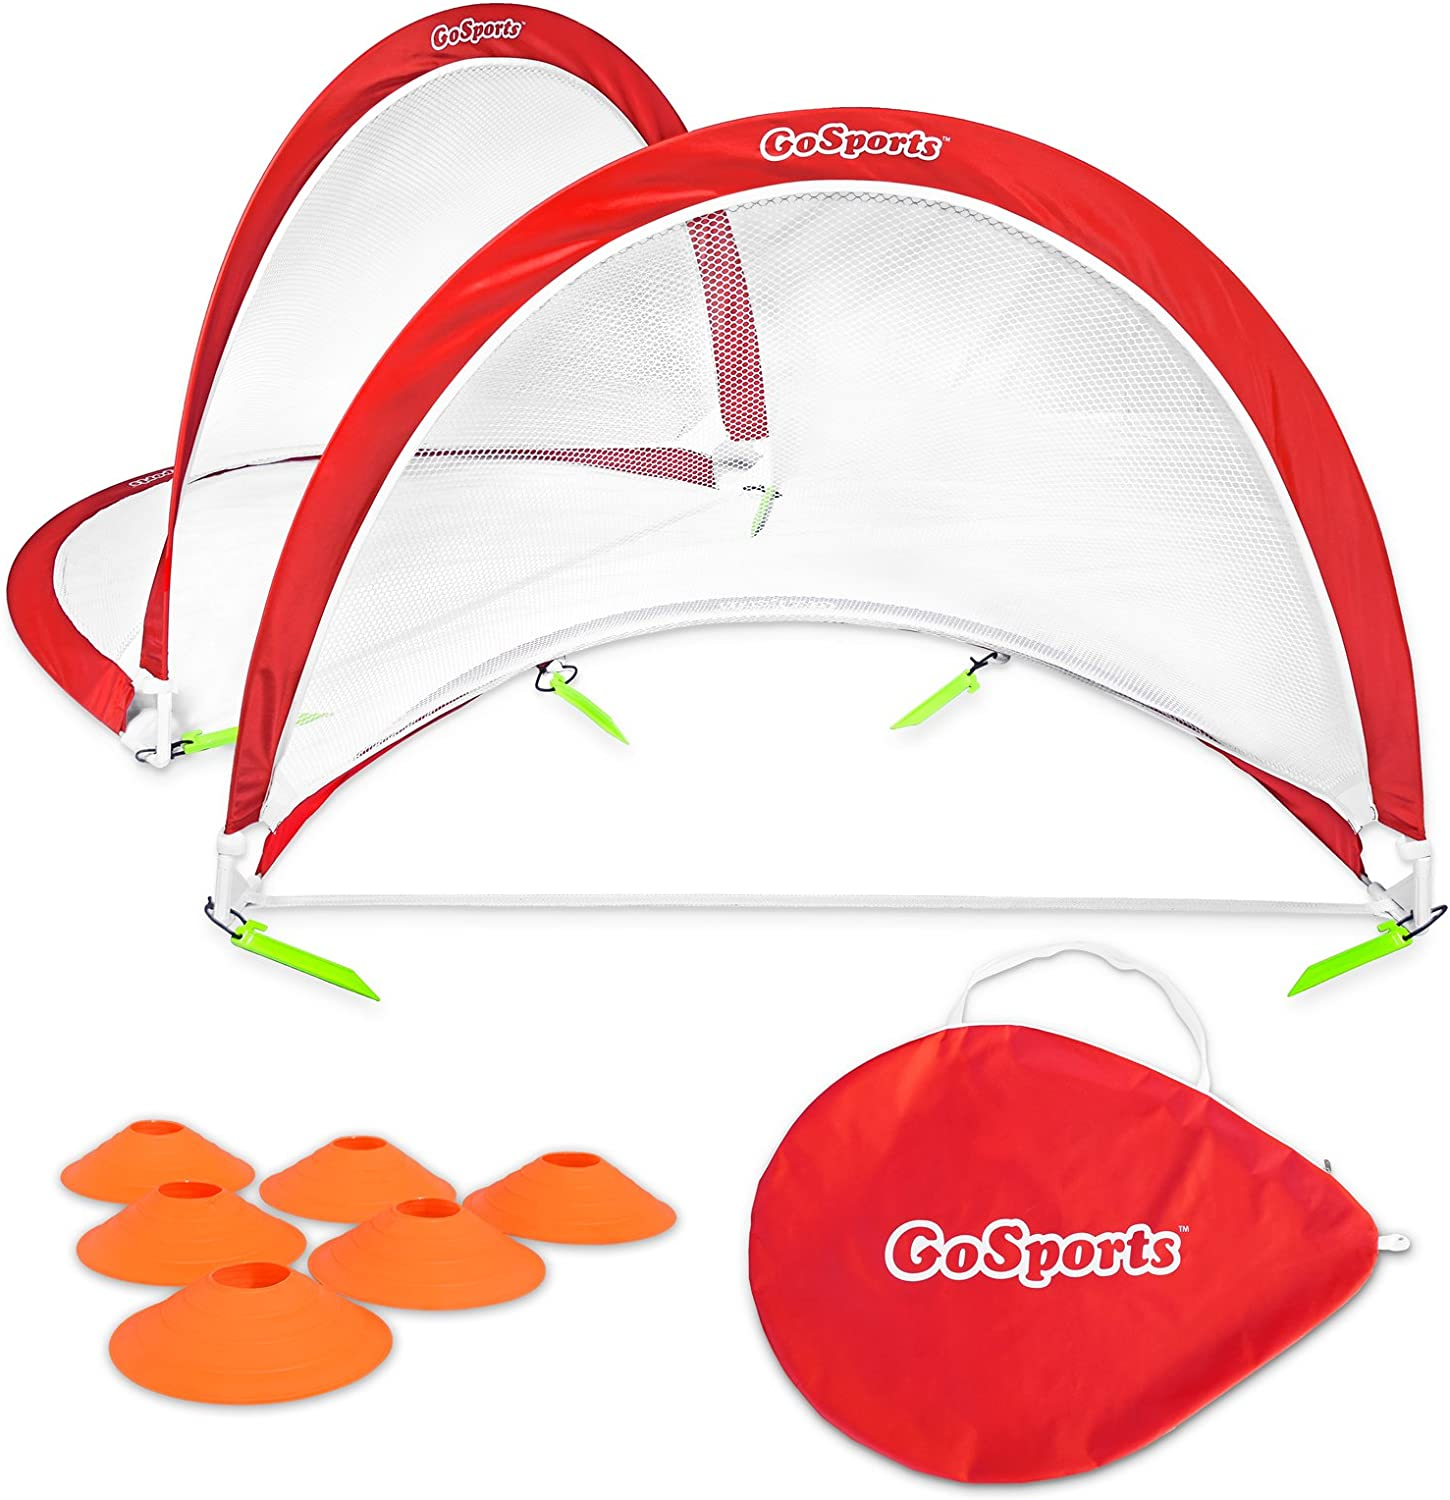 GoSports Foldable Pop Up Soccer Goal Nets, Set of 2, With Agility Training Cones and Portable Carrying Case for Kids & Adults (Choose from 2.5', 4' and 6' sizes)